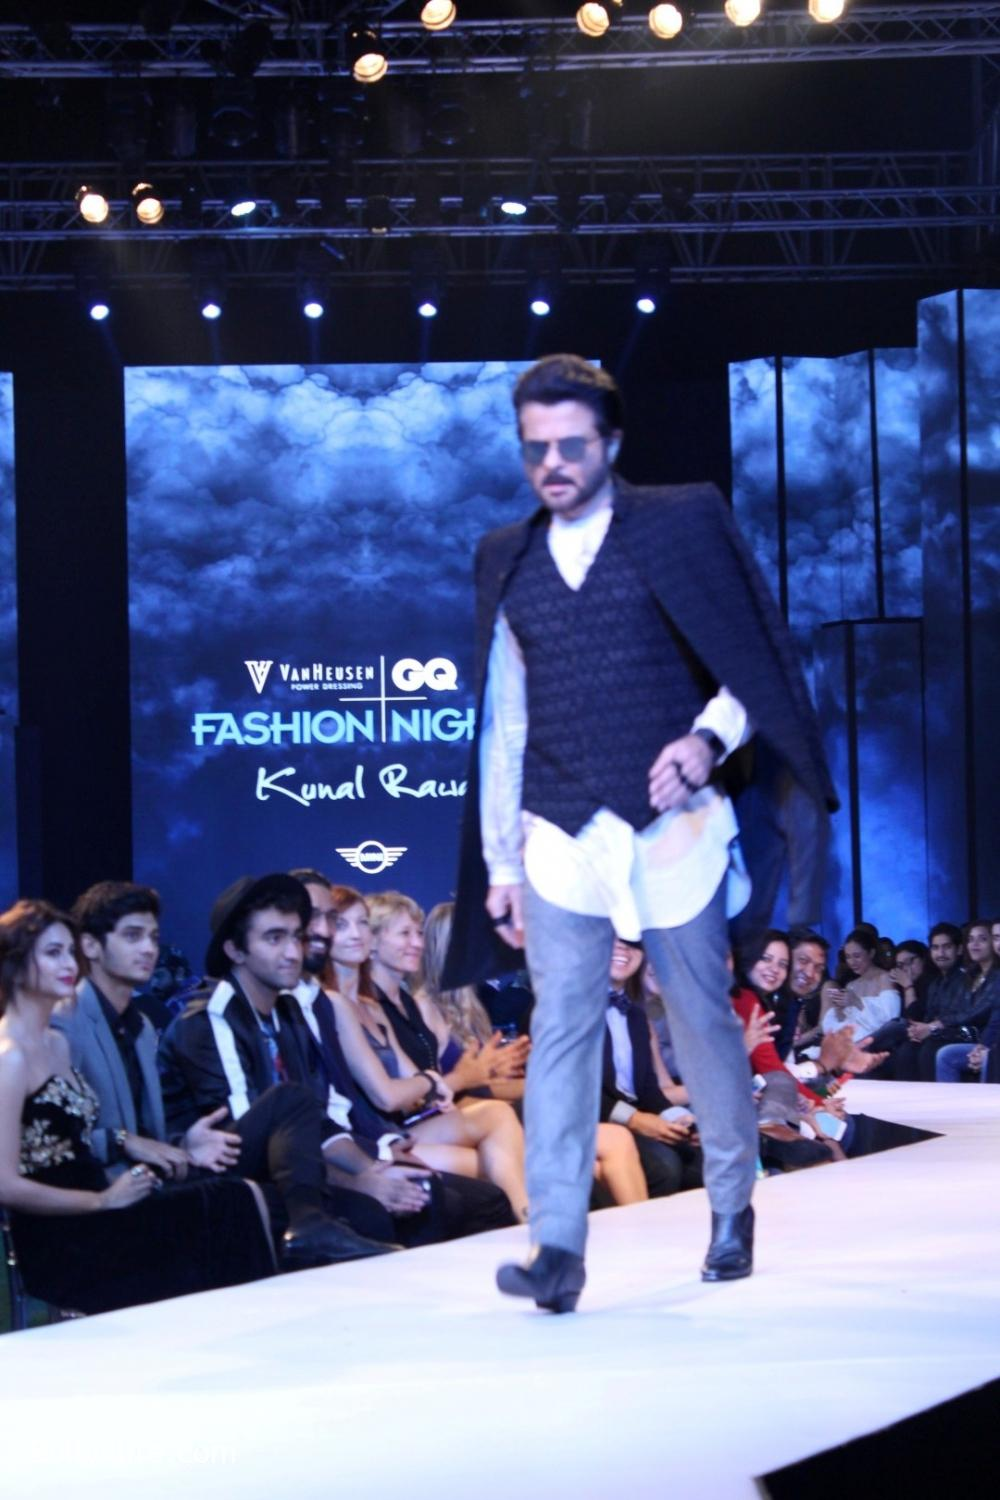 Anil-Kapoor-displays-the-creation-of-fashion-designer-Kunal-Rawal-1.jpg